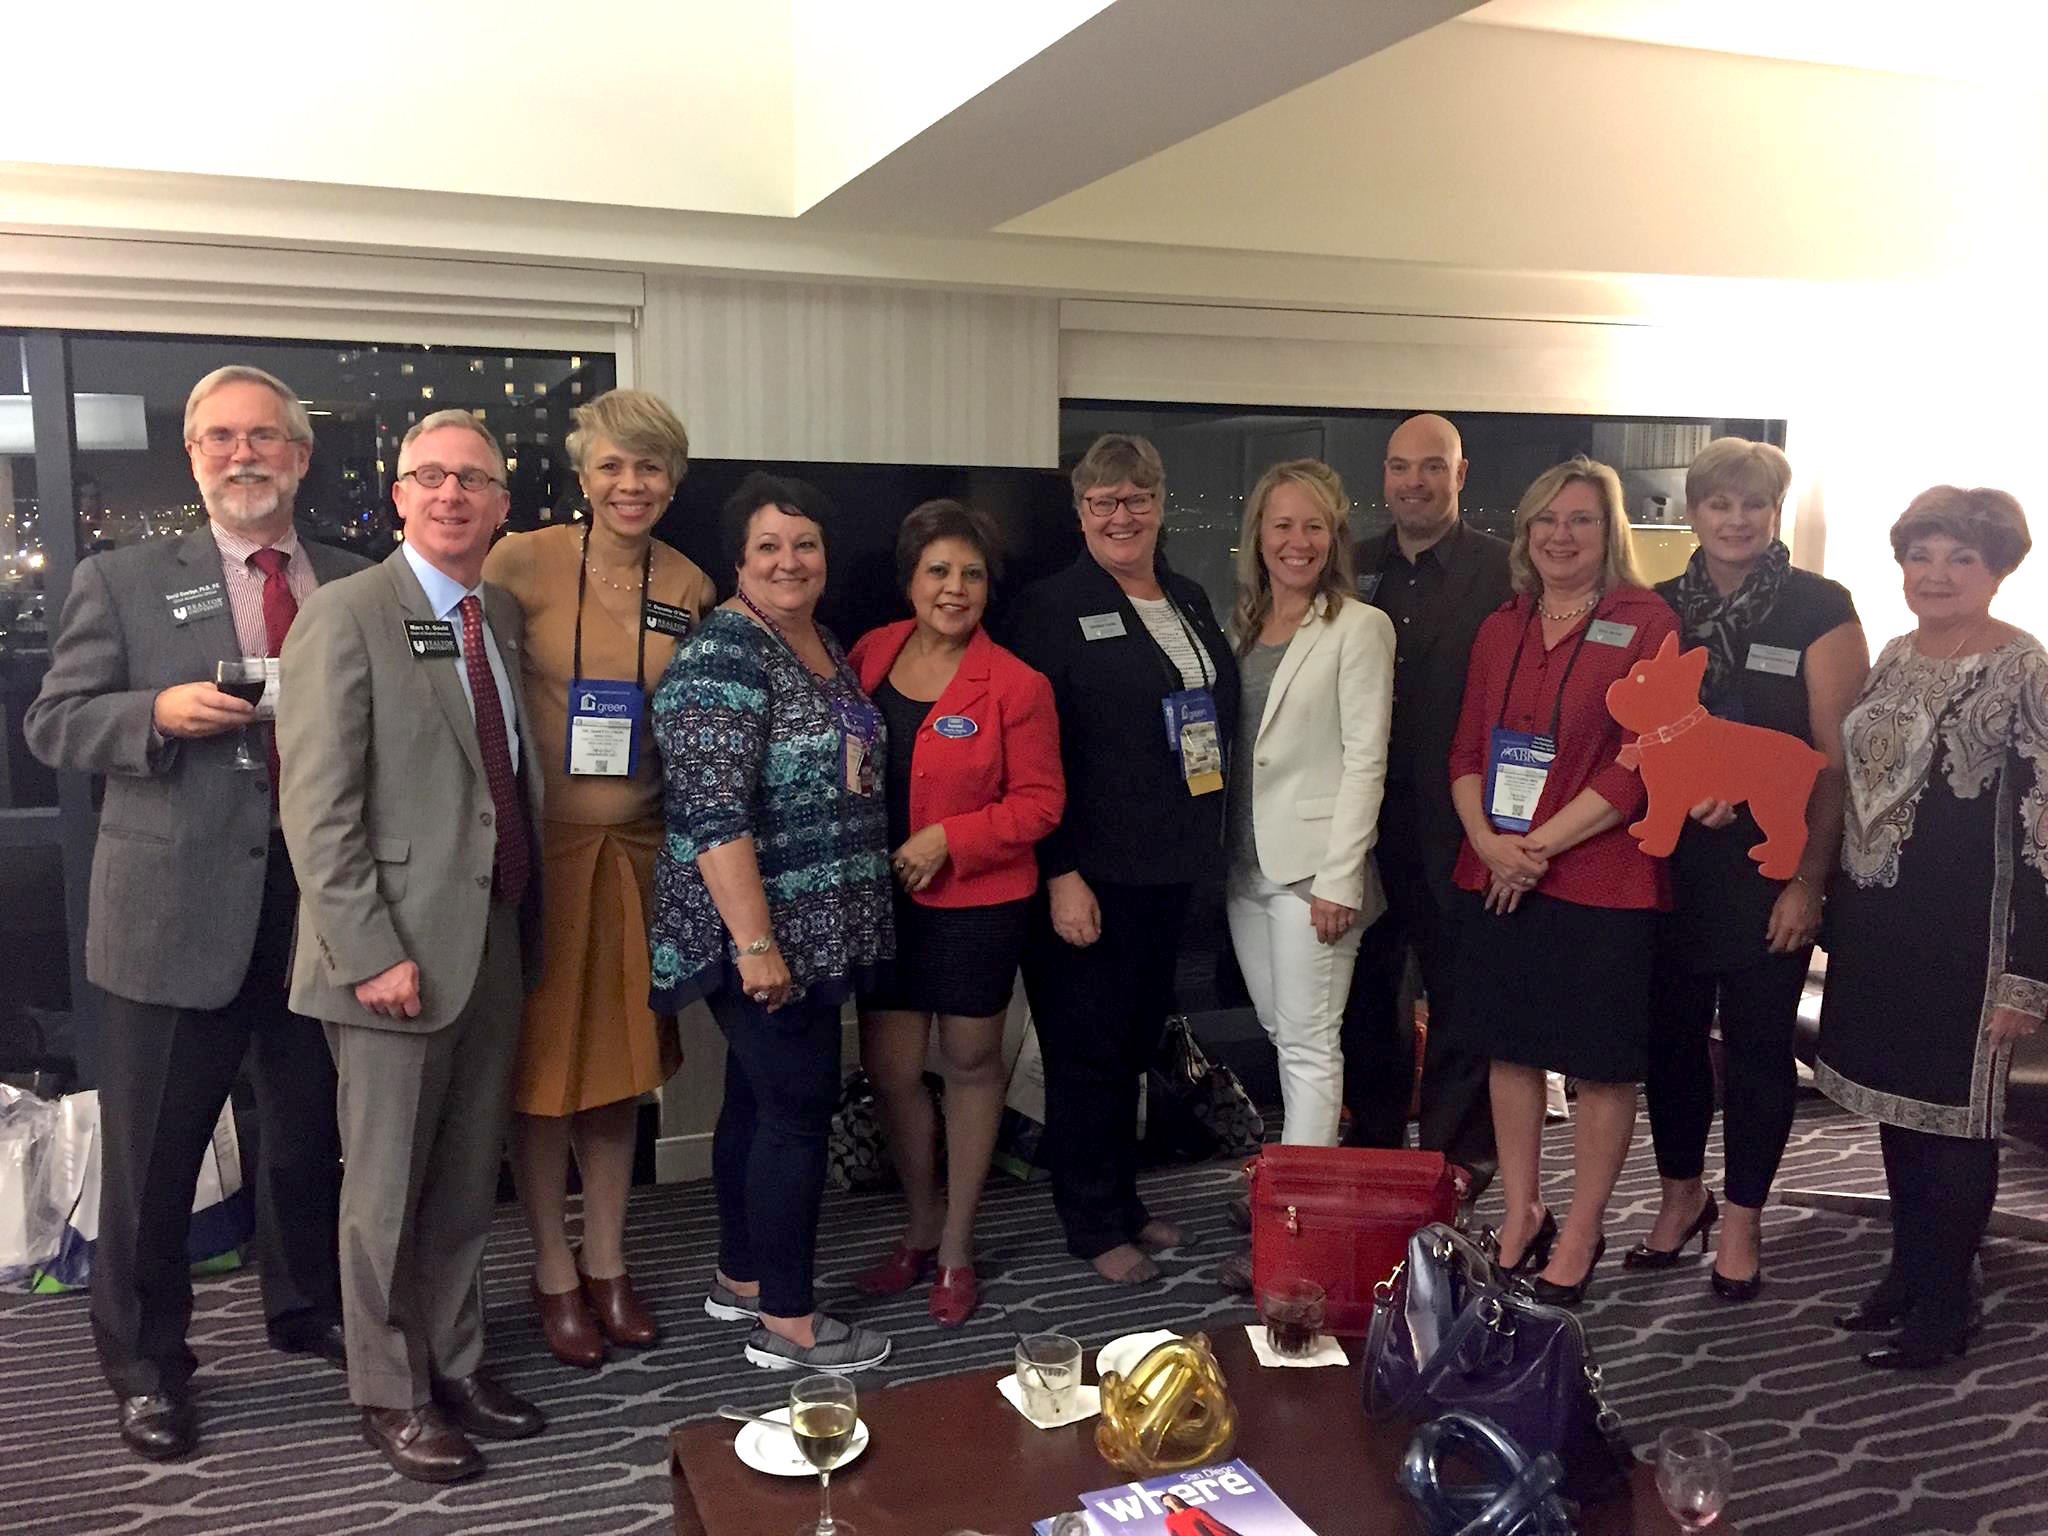 REALTOR® University gathering at the 2015 REALTORS® Conference & Expo in San Diego.